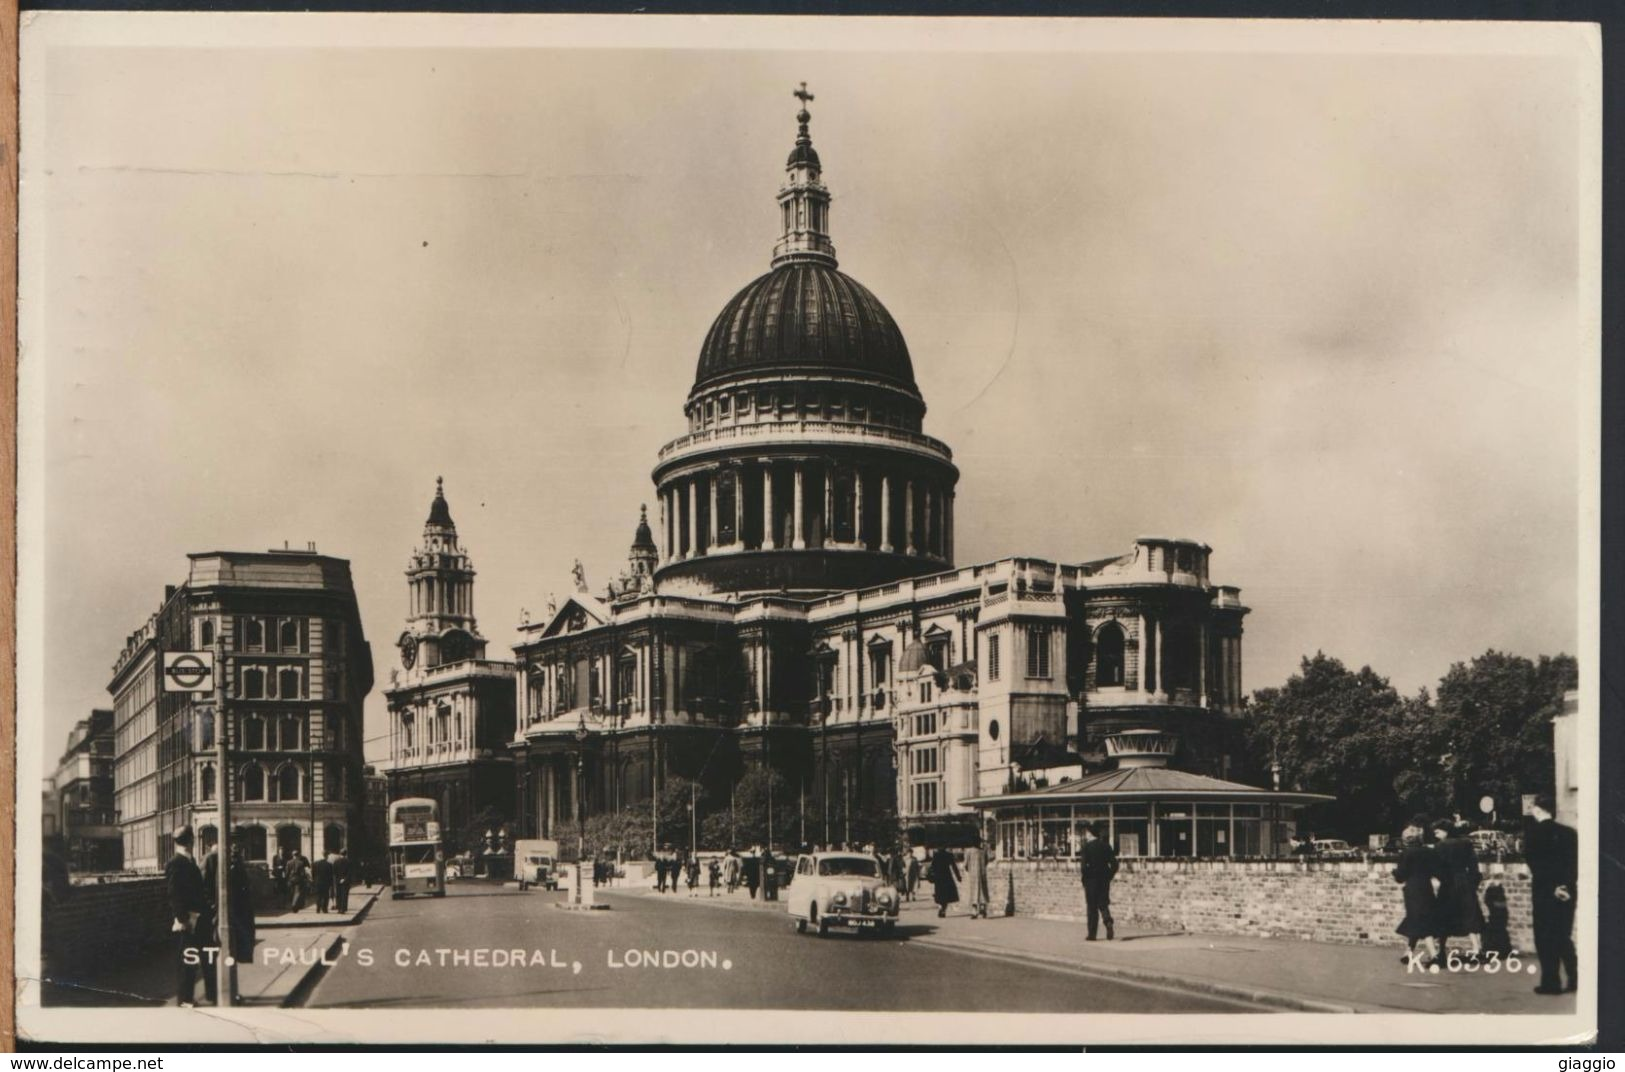 °°° 7640 - UK - LONDON - ST. PAUL'S CATHEDRAL - 1958 With Stamps °°° - St. Paul's Cathedral